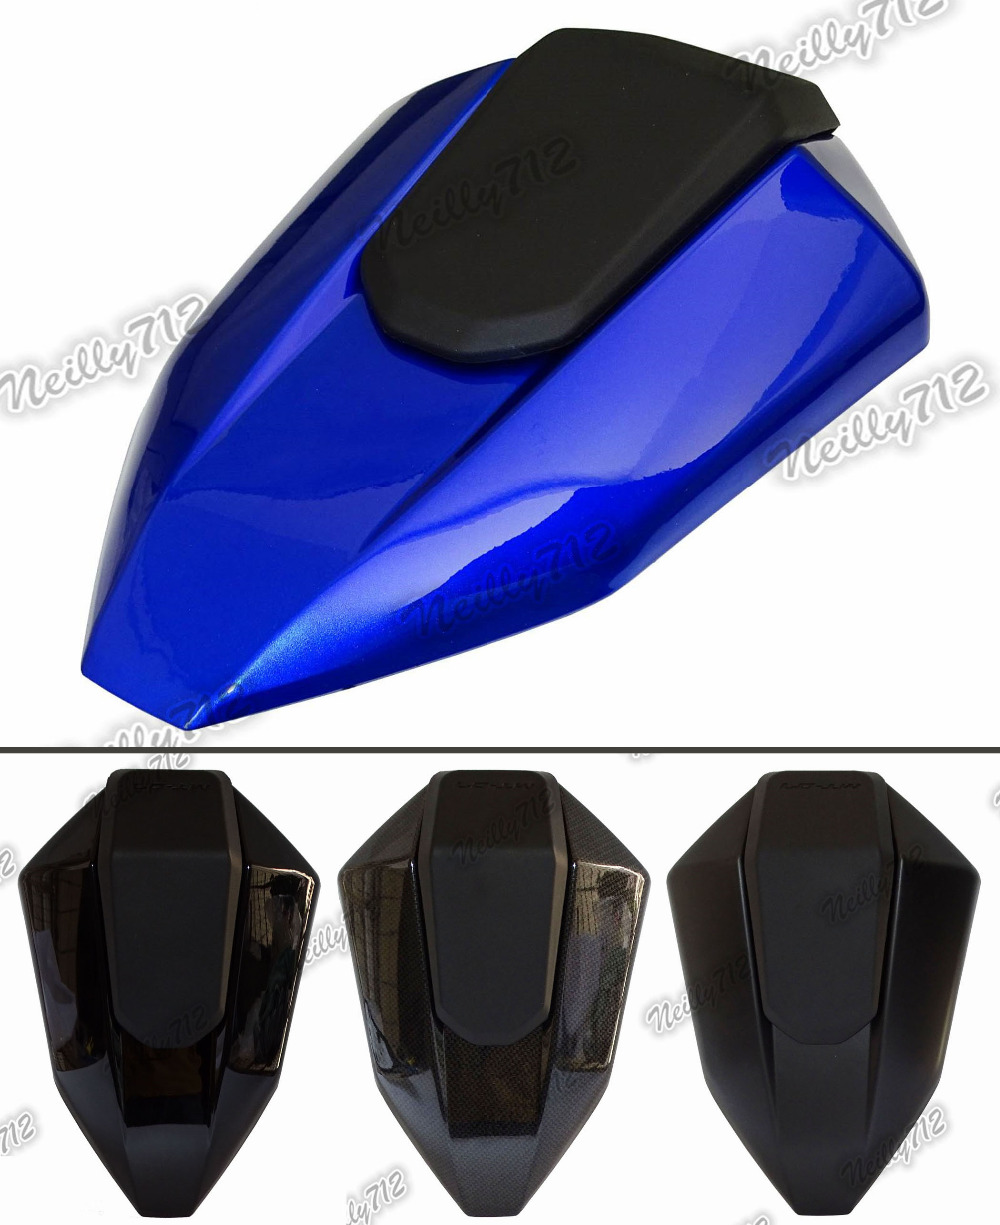 waase Rear Seat Cover Tail Section Fairing Cowl For Yamaha MT-07 MT07 FZ-07 FZ07 2014 2015 2016 for yamaha mt 07 fz 07 mt07 fz07 rear seat cover cowl painted abs plastic for yamaha mt 07 fz 07 mt07 2014 2015 2016 new arrival